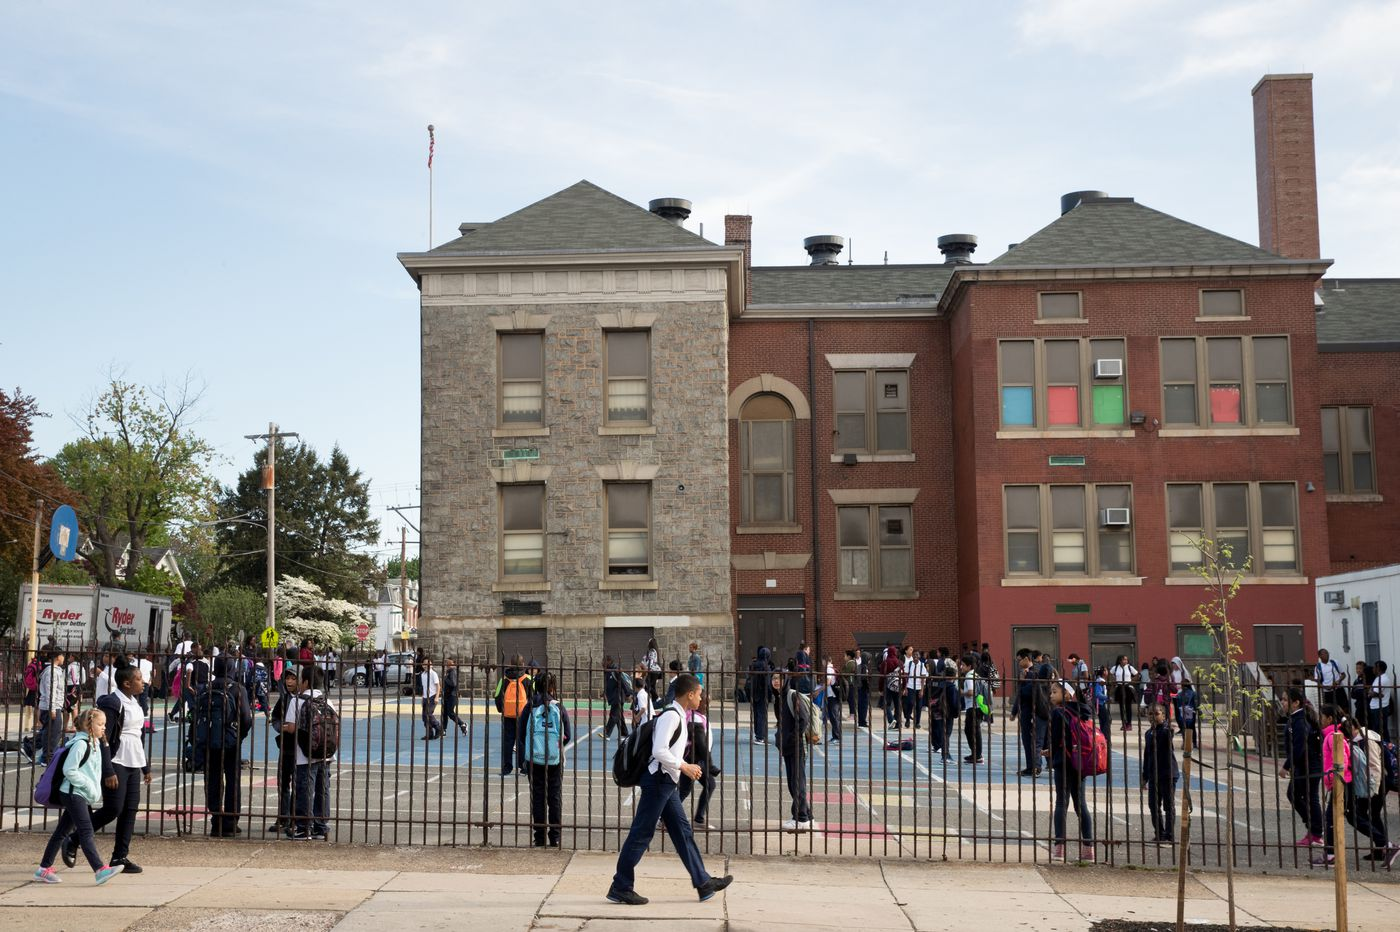 New test: 10.7 million asbestos fibers on floor at Philadelphia elementary school